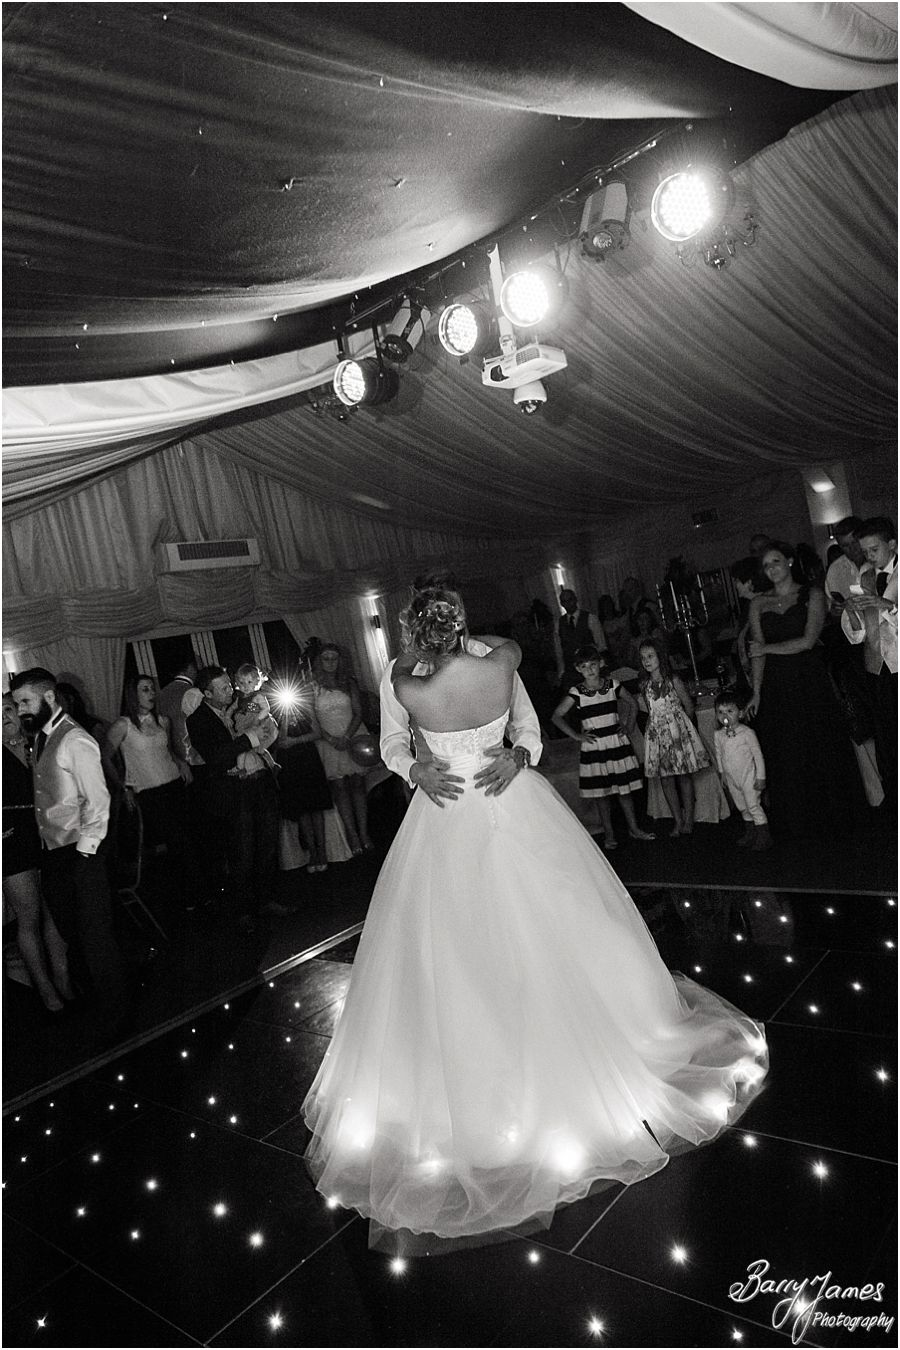 Elegant and relaxed wedding photography at Calderfields Golf Club in Walsall by Walsall Wedding Photographer Barry James